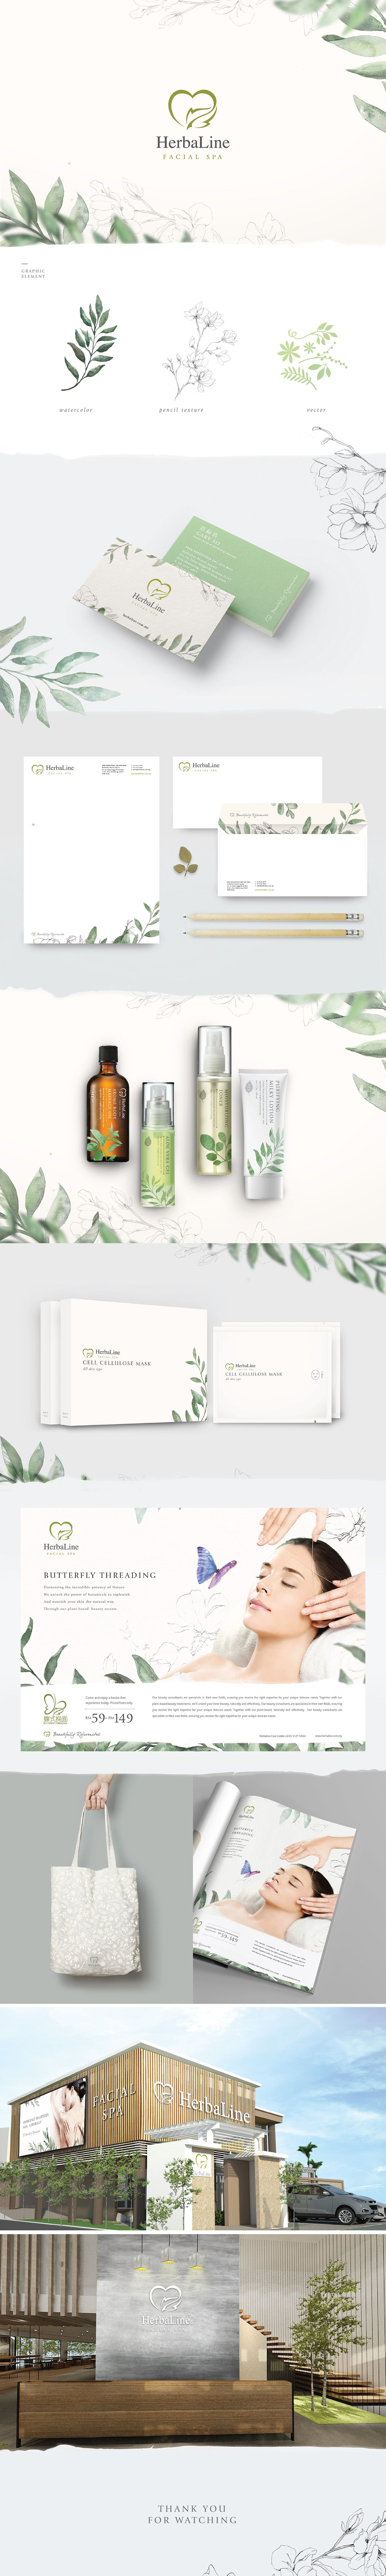 HerbaLine Facial Spa Branding on Behance